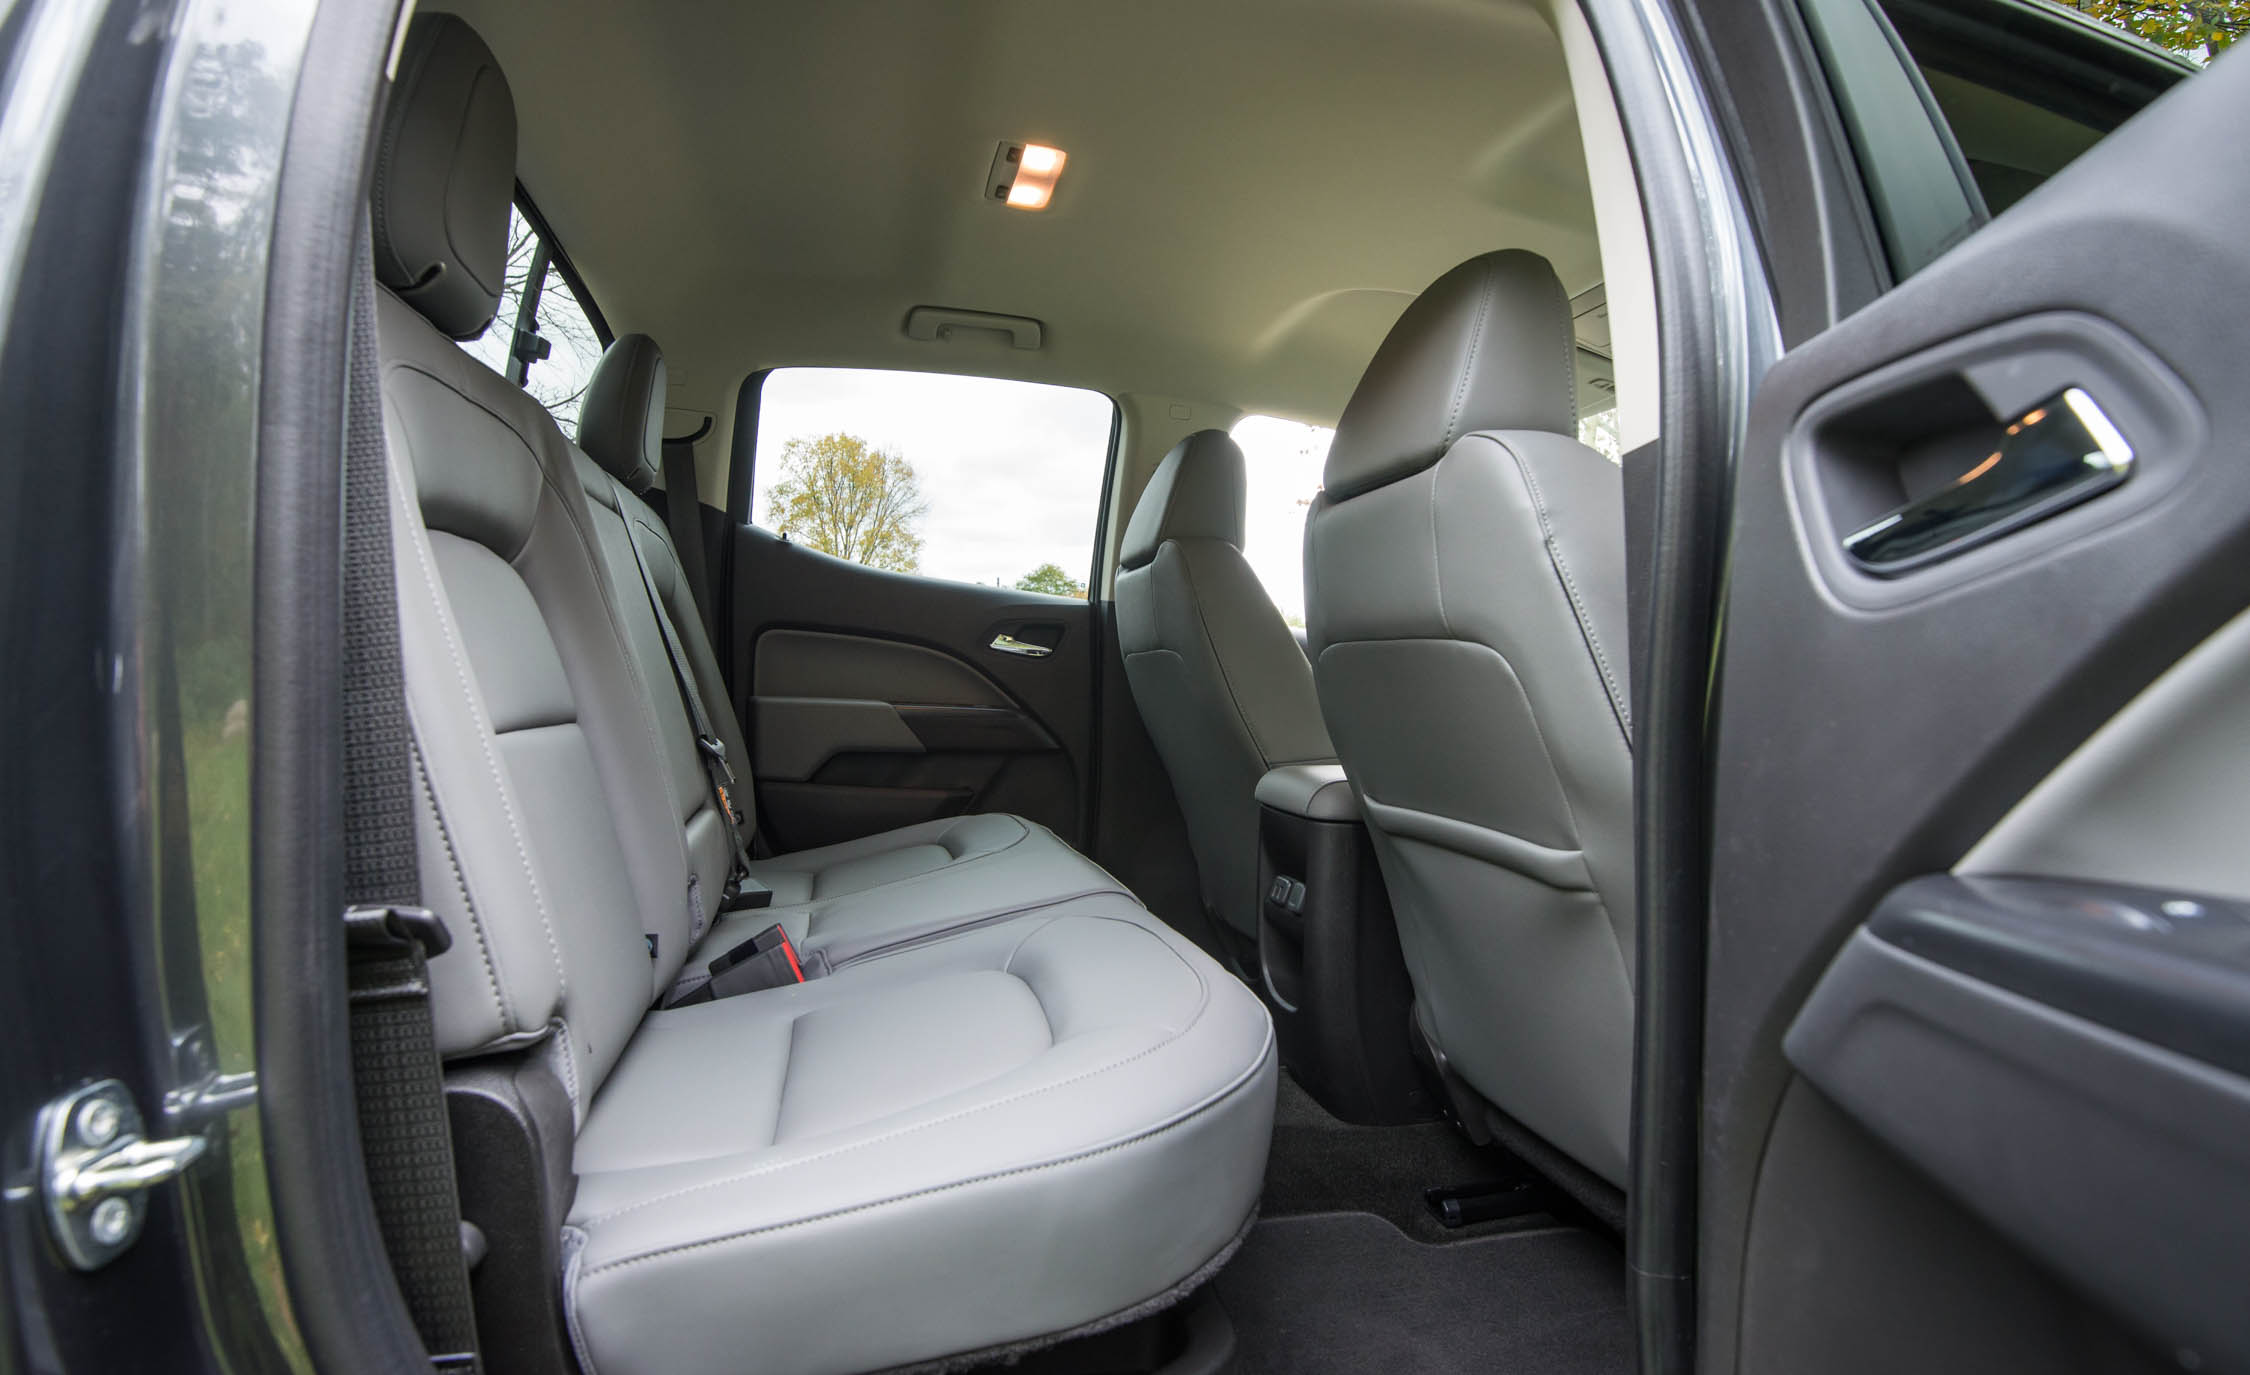 2017 Chevrolet Colorado LT Interior Seats Rear Passengers (Photo 33 of 41)